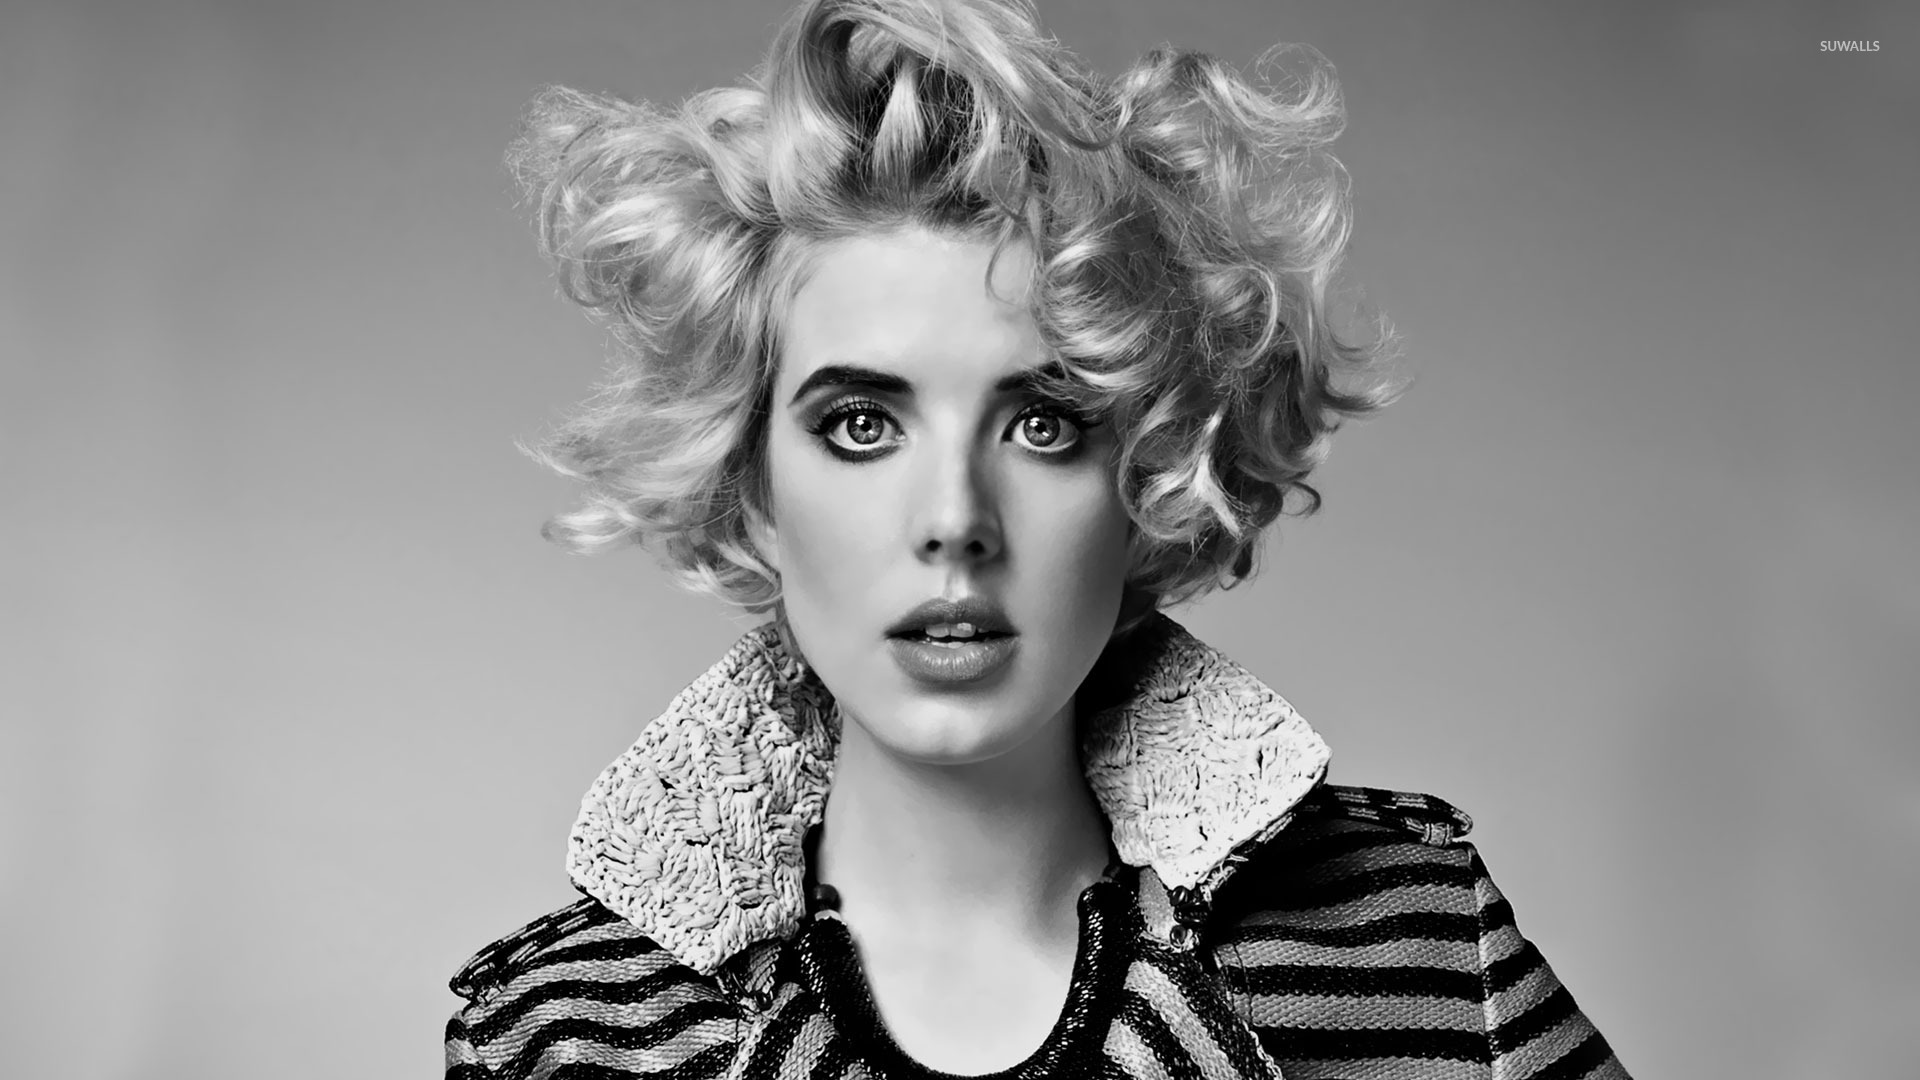 Agyness Deyn at Our Site?